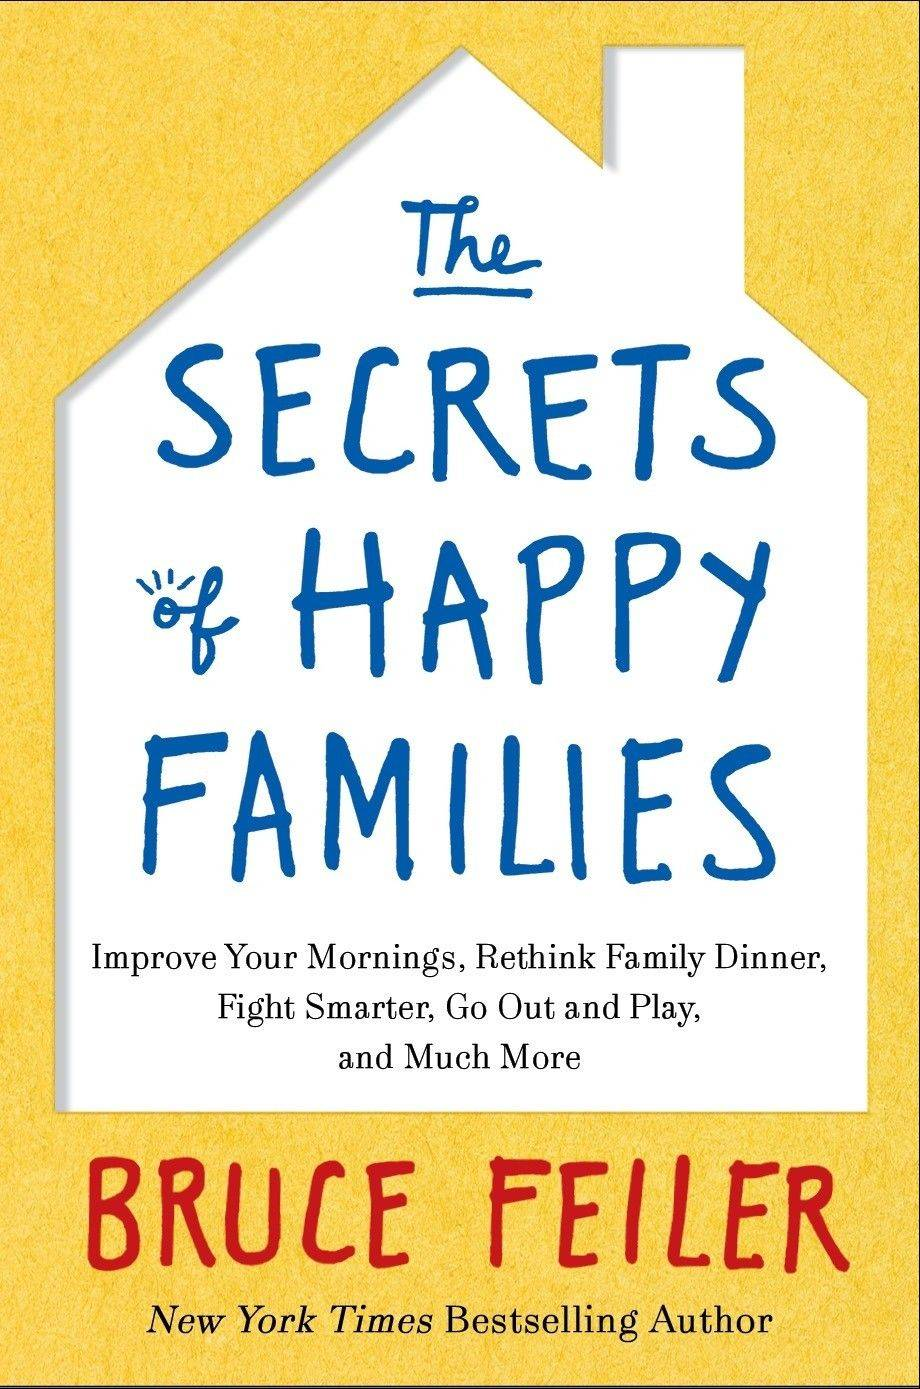 """The Secrets of Happy Families"" by Bruce Feiler (William Morrow, 2103), $25.99, 292 pages."